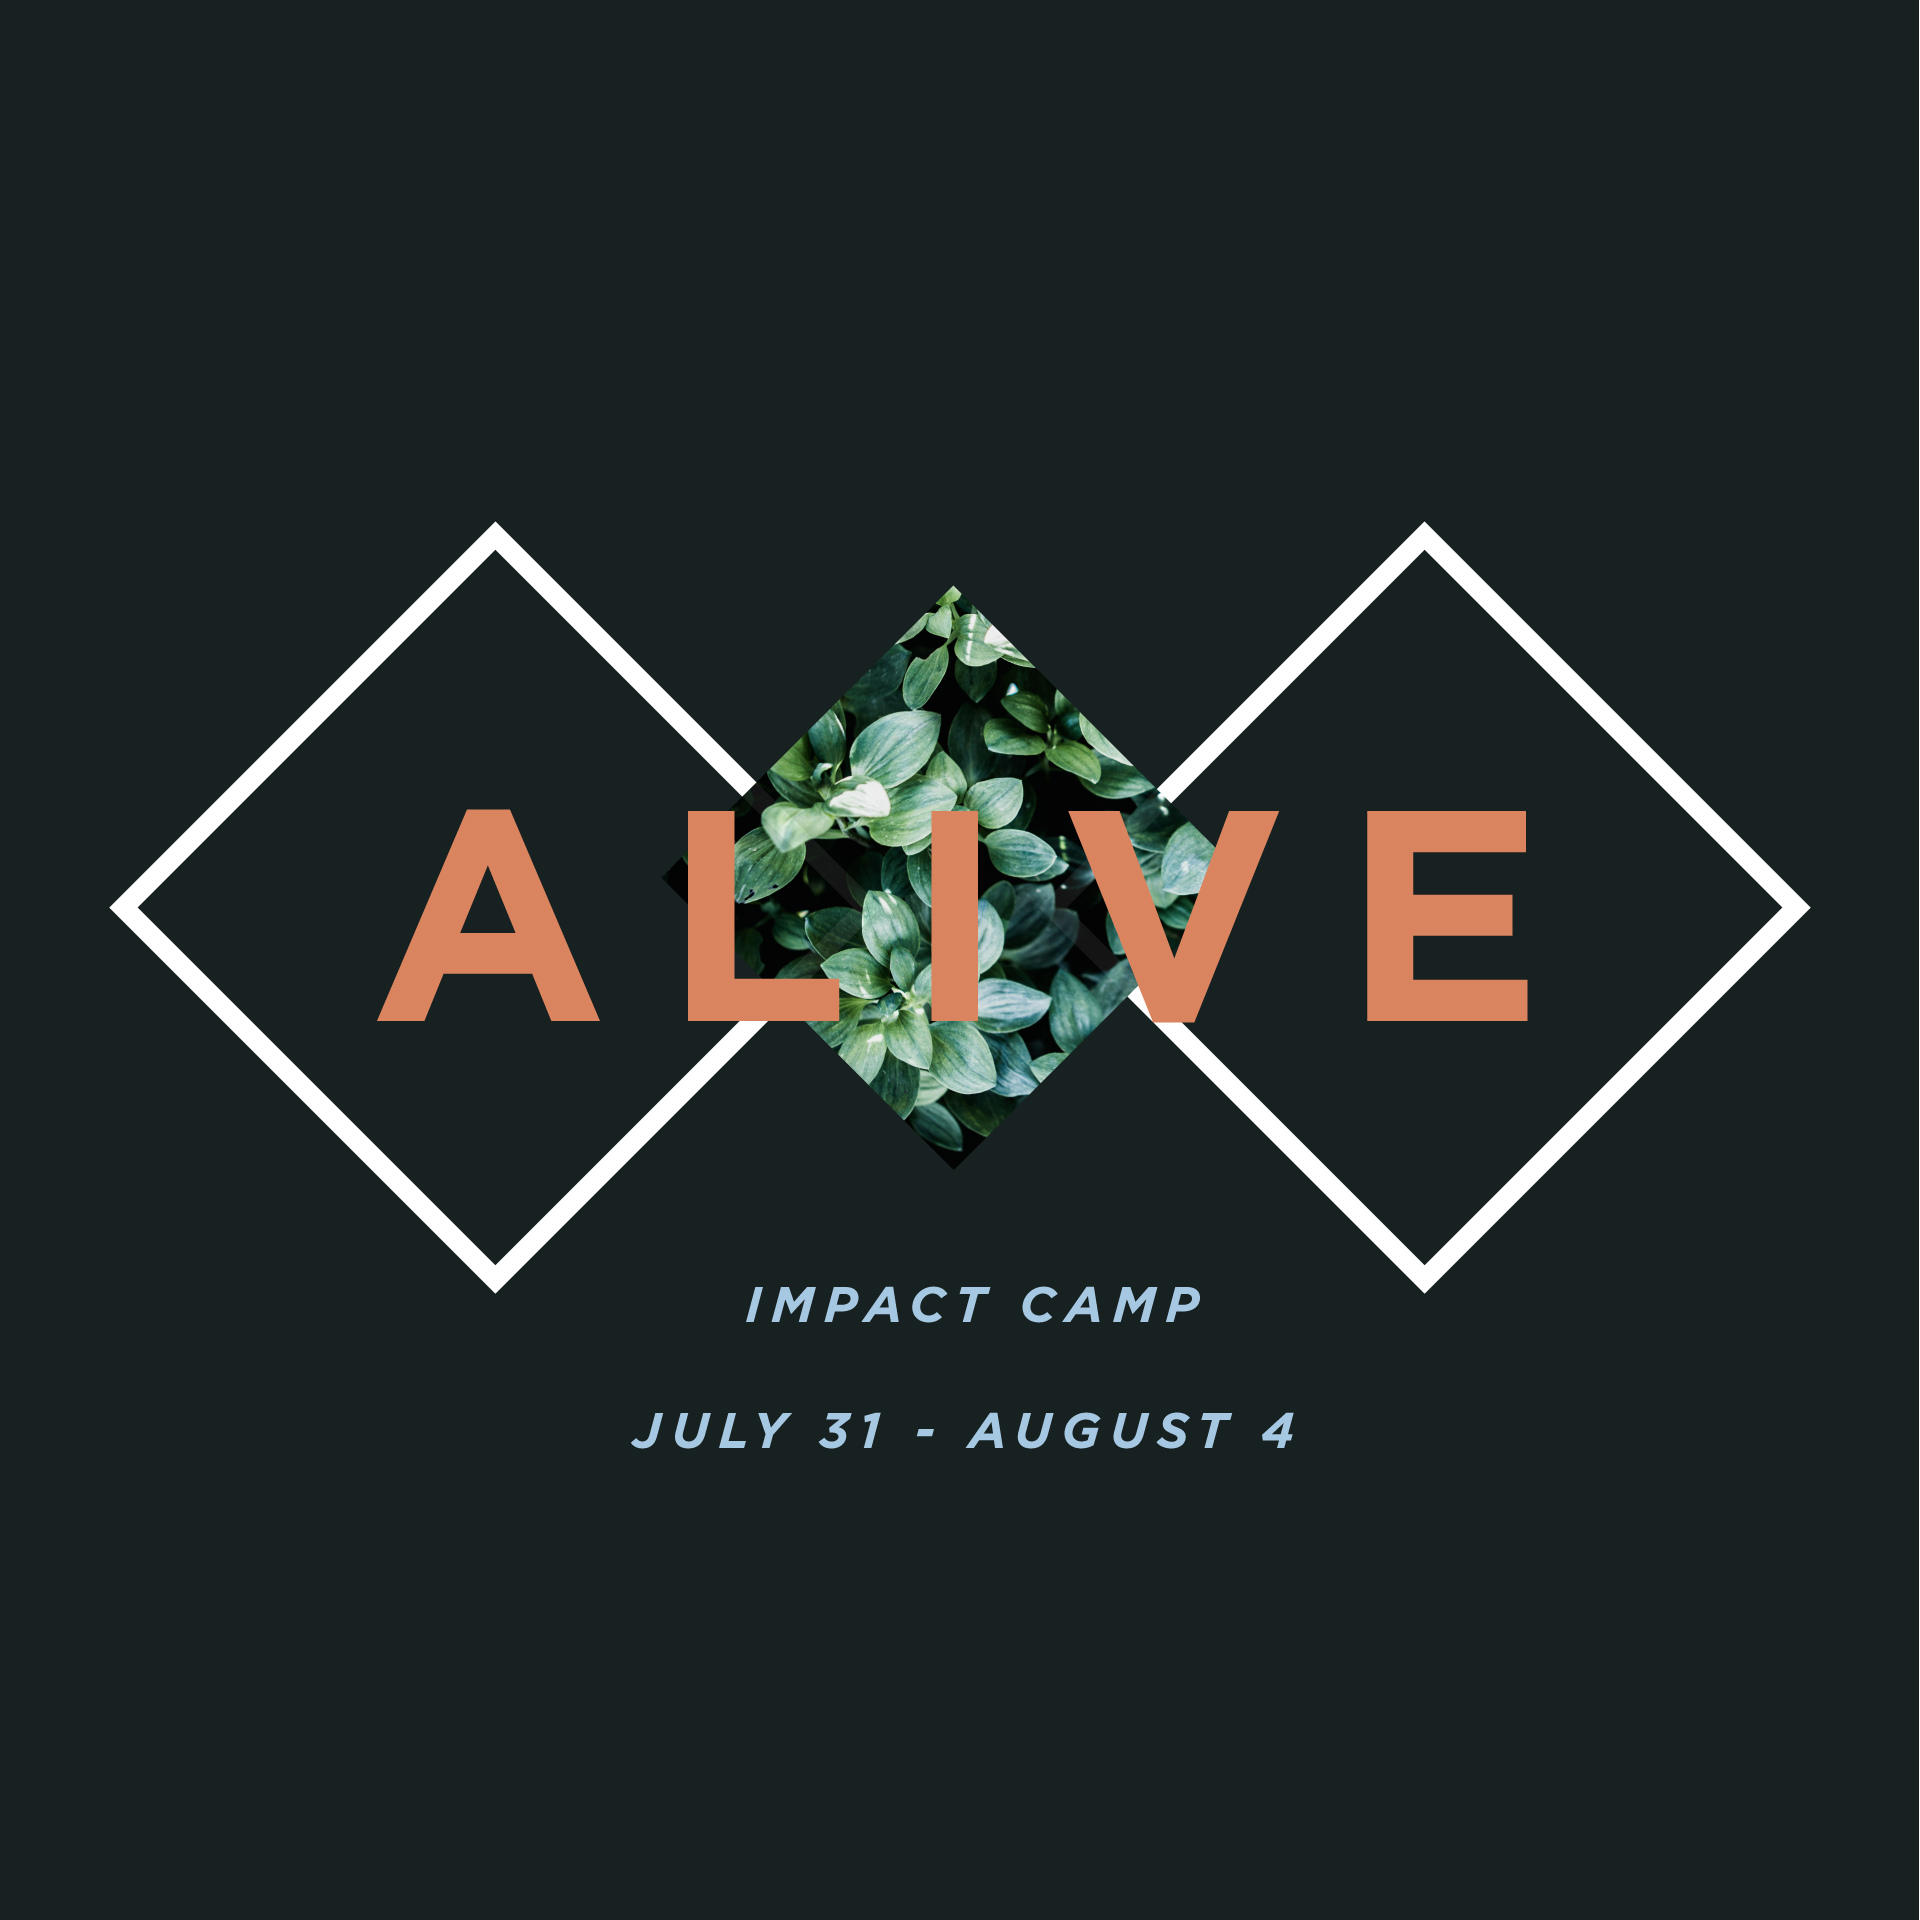 Alive impactcamp promotional 16